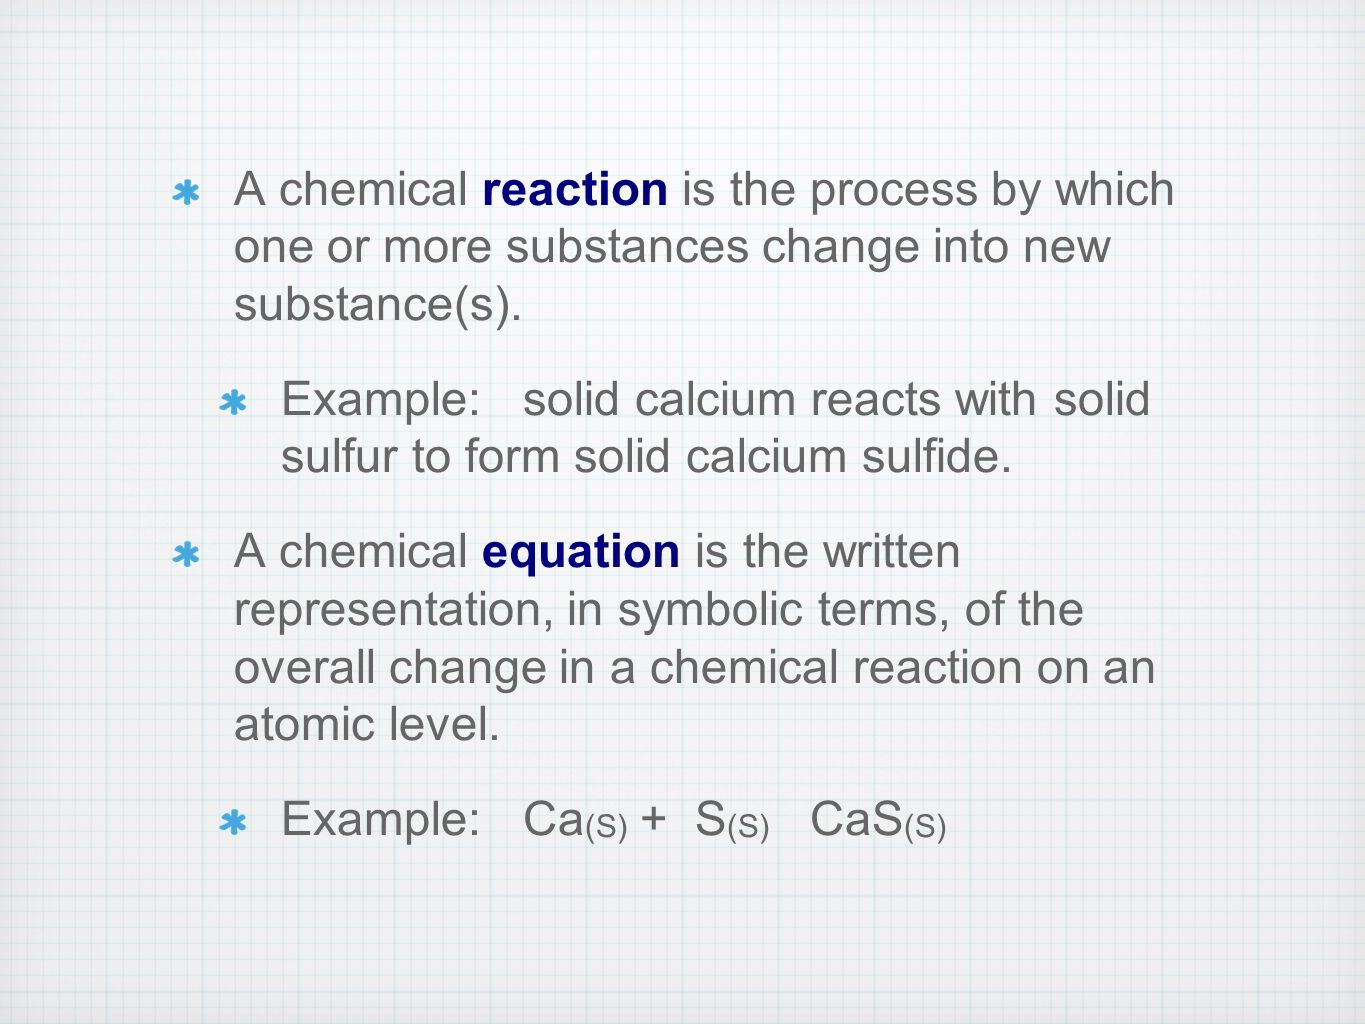 A chemical reaction is the process by which one or more substances change into new substance(s).